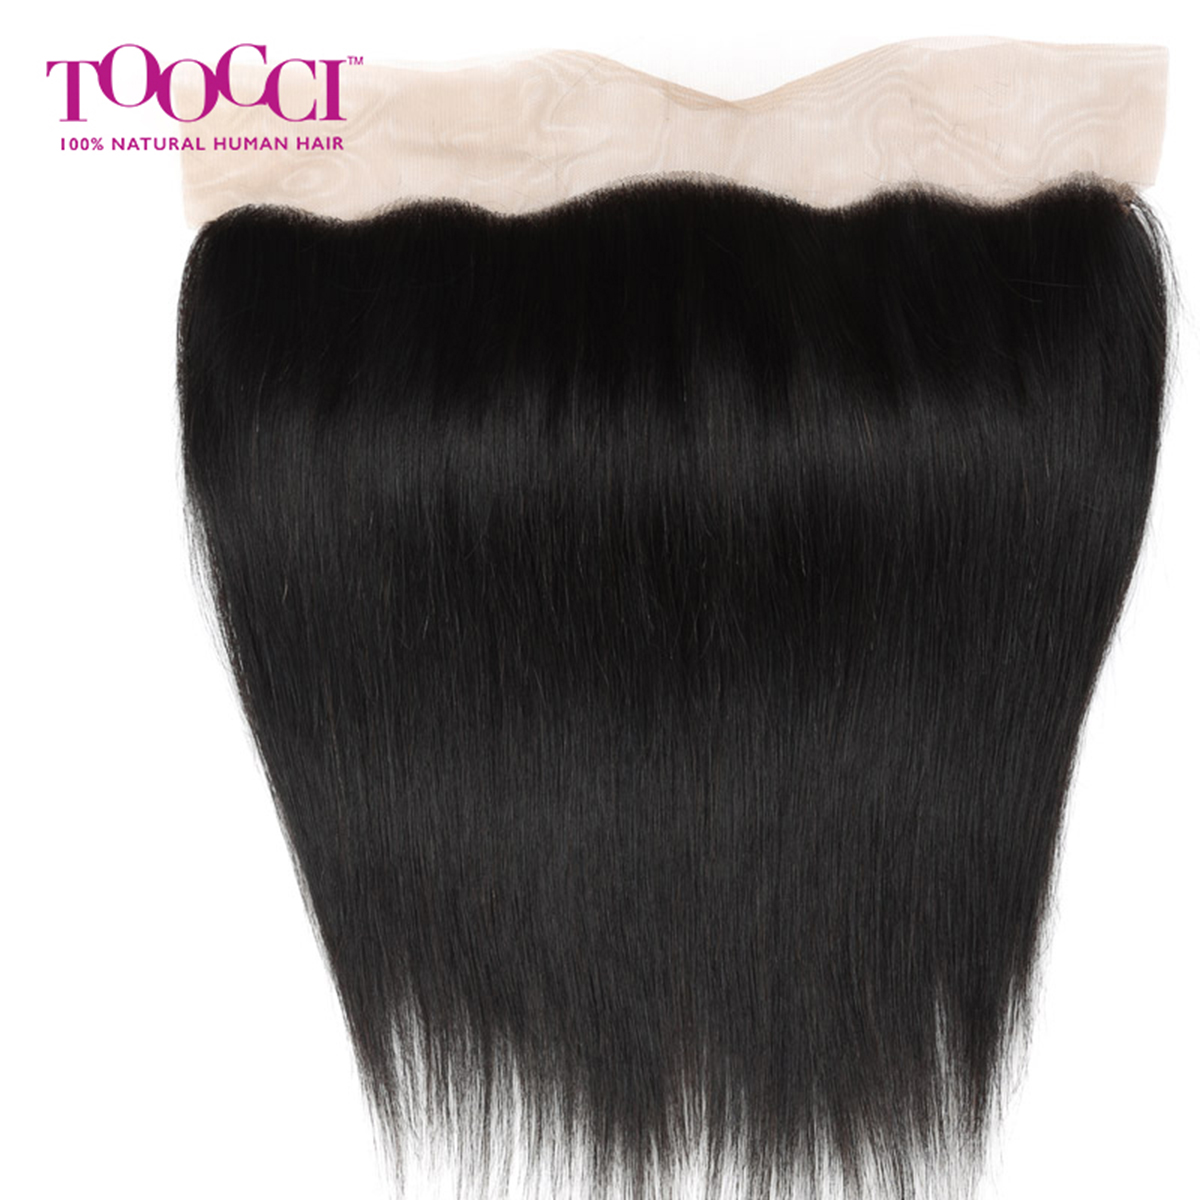 8A-Brazilian-Virgin-Straight-100-Human-Hair-1-3-Bundles-with-Lace-Closure-US thumbnail 17